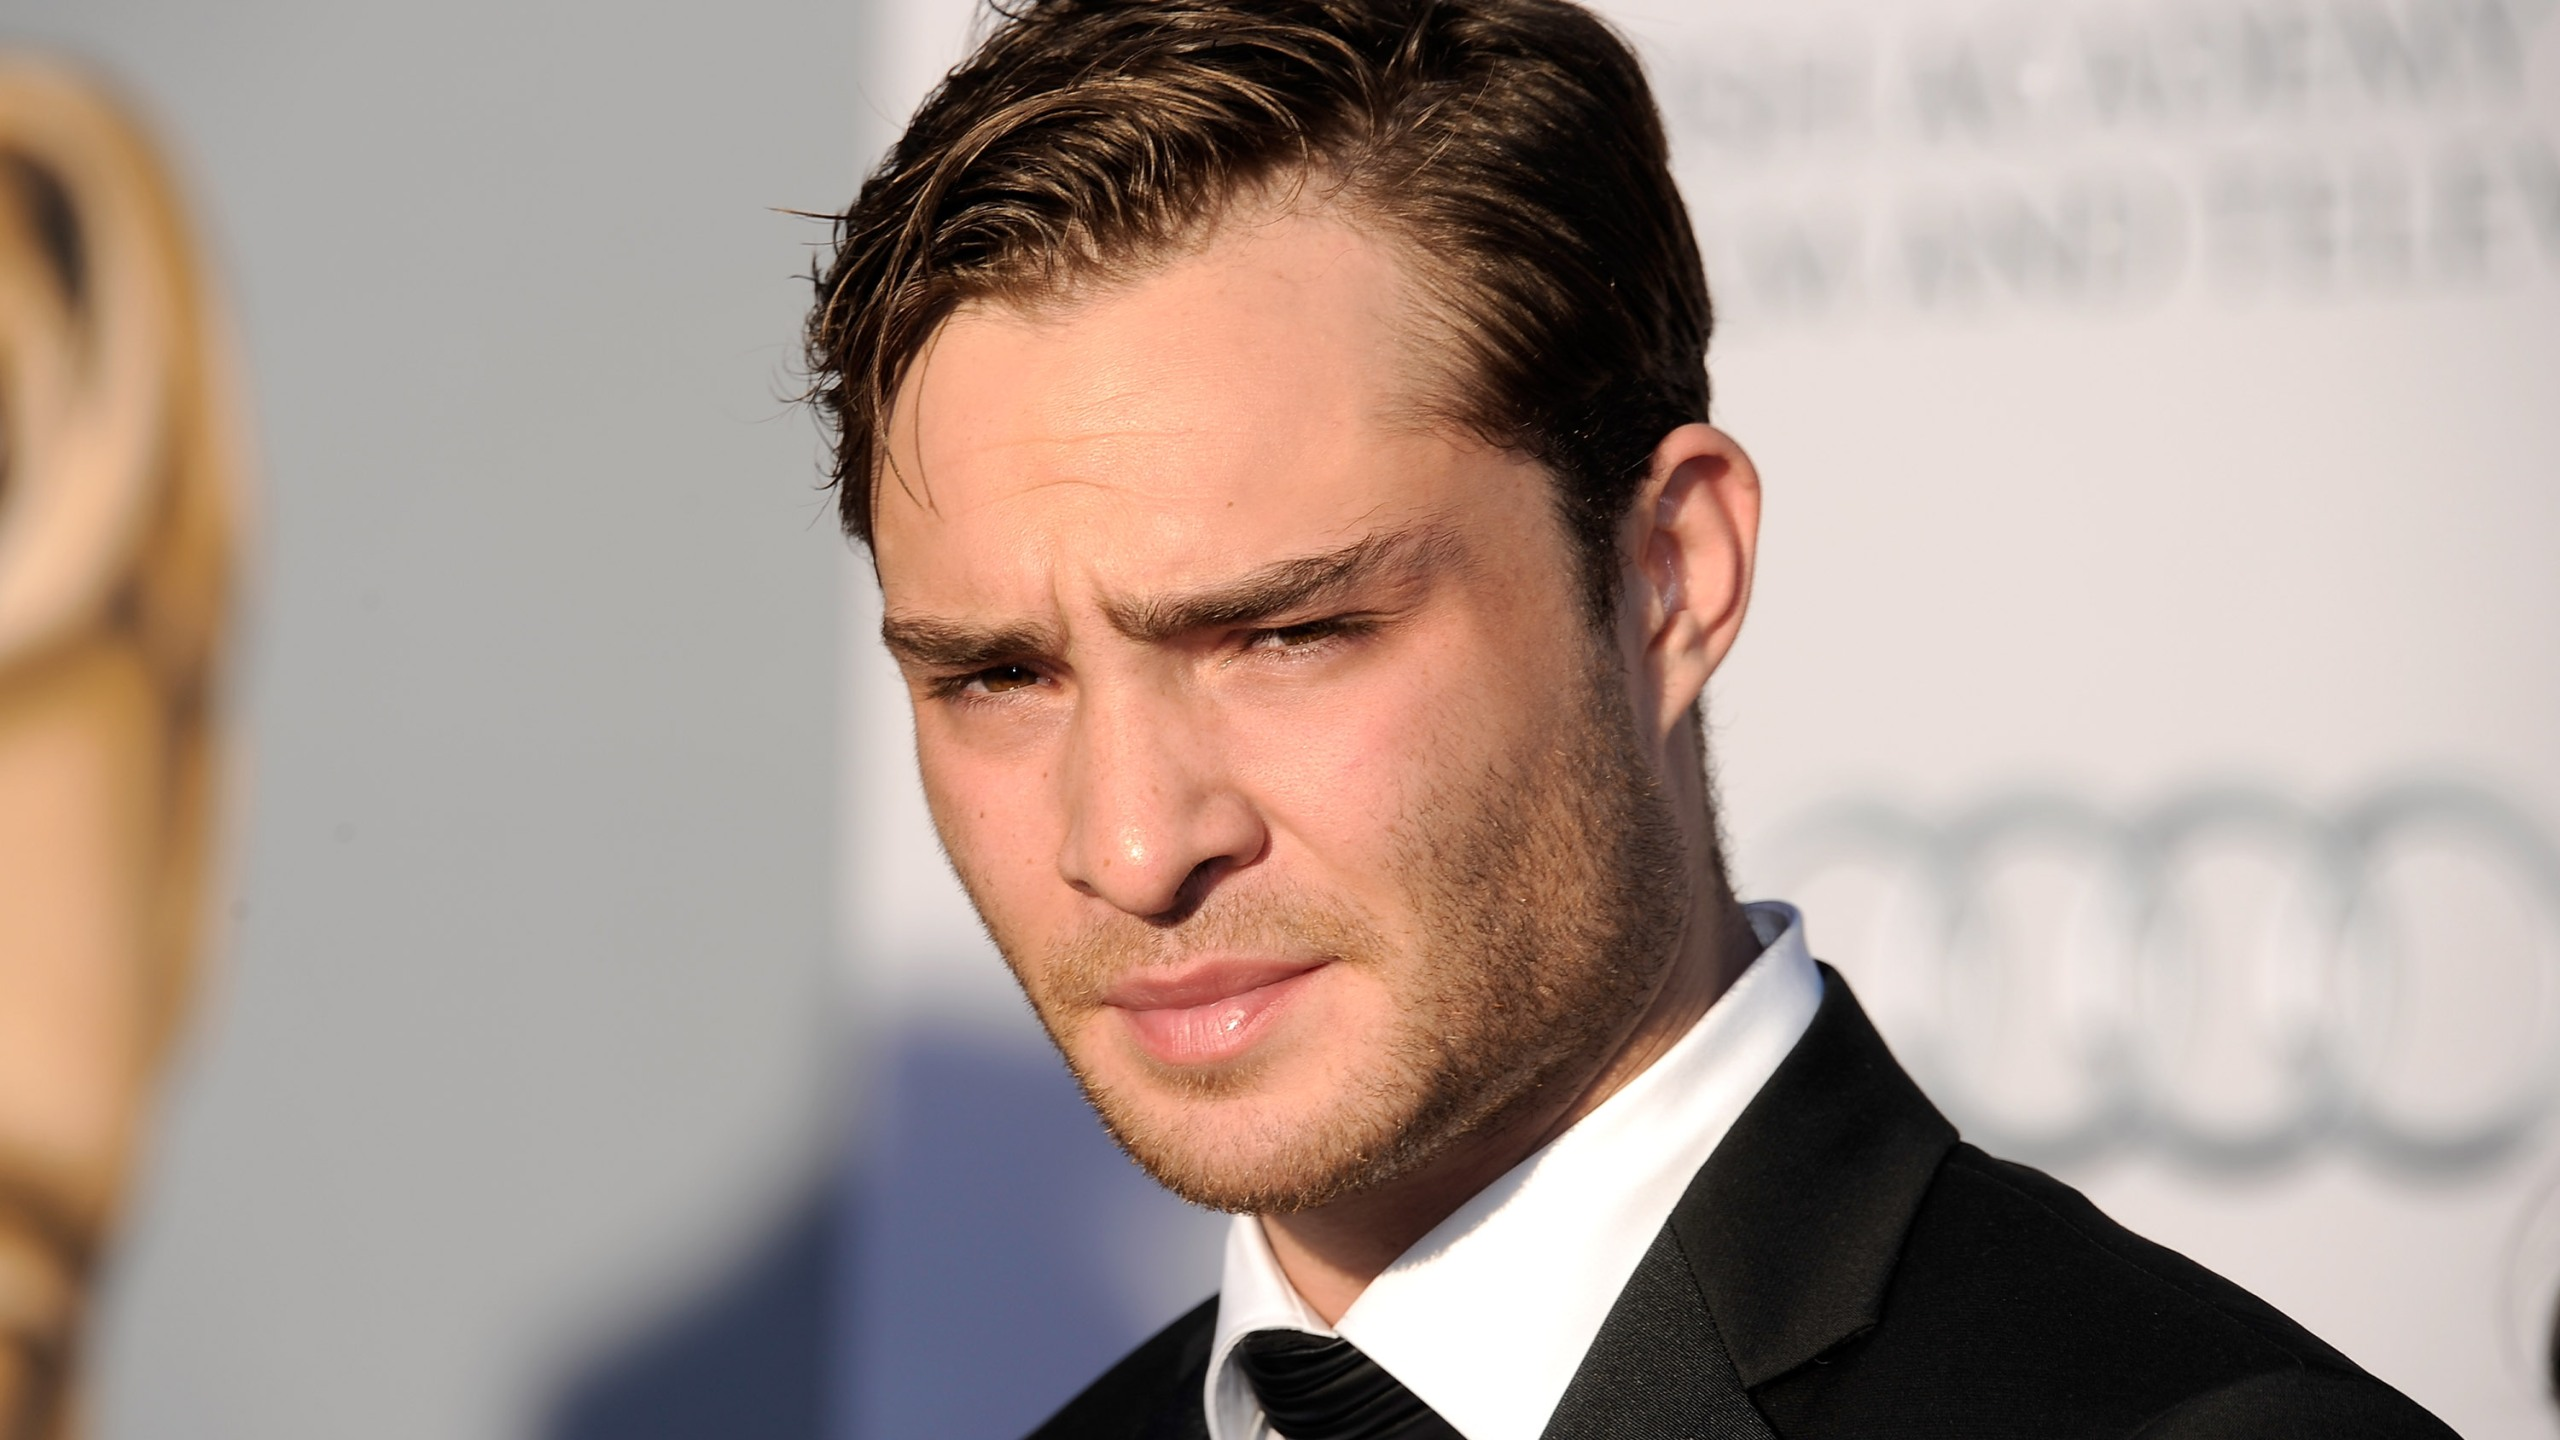 Actor Ed Westwick arrives at the BAFTA Brits To Watch event held at the Belasco Theatre on July 9, 2011, in Los Angeles. (Credit: Kevork Djansezian/Getty Images)